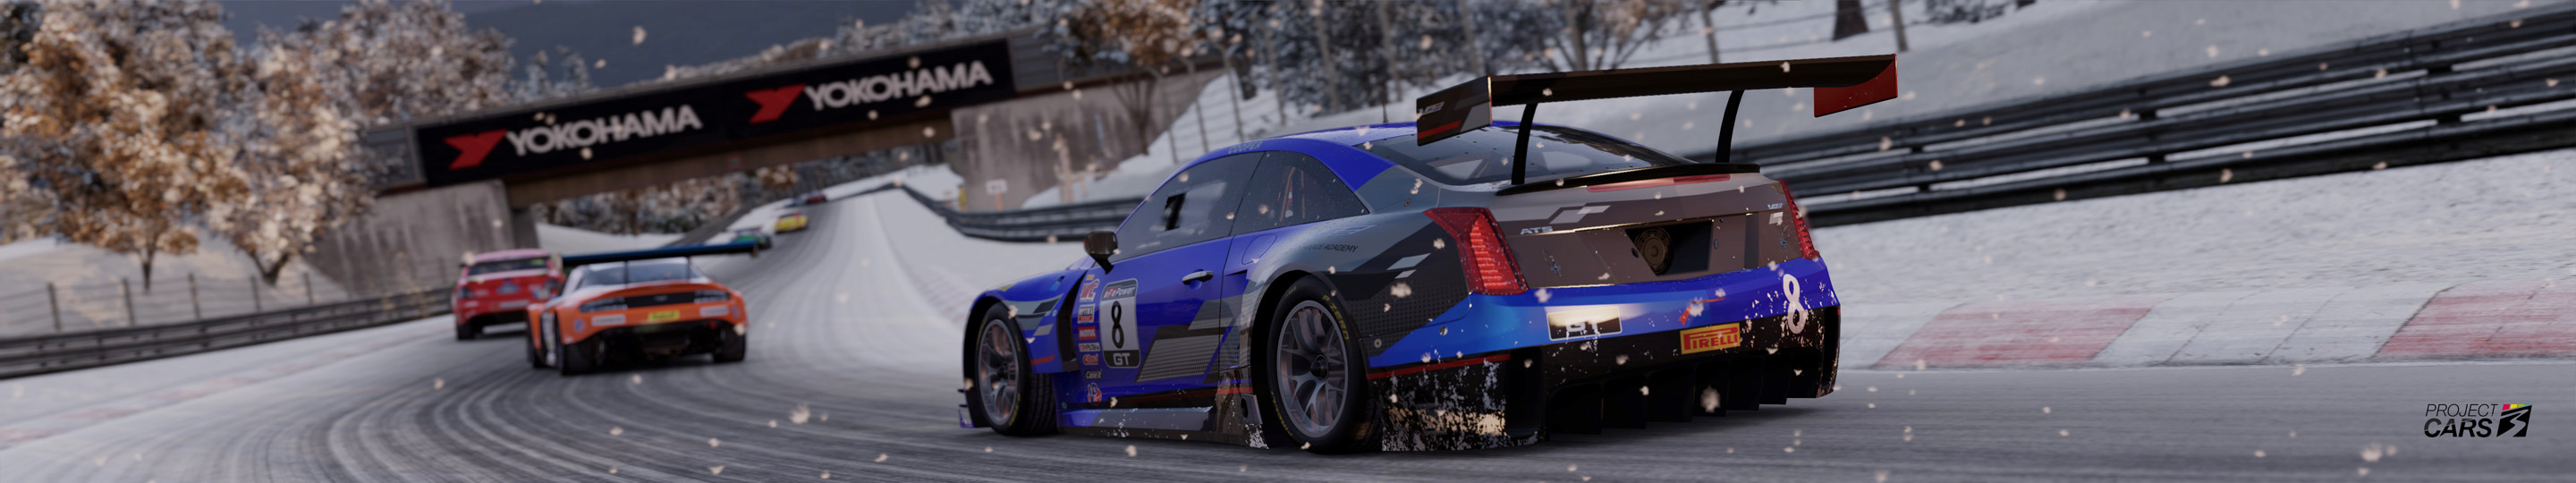 2 PROJECT CARS GT3 at NORDS Snow copy.jpg